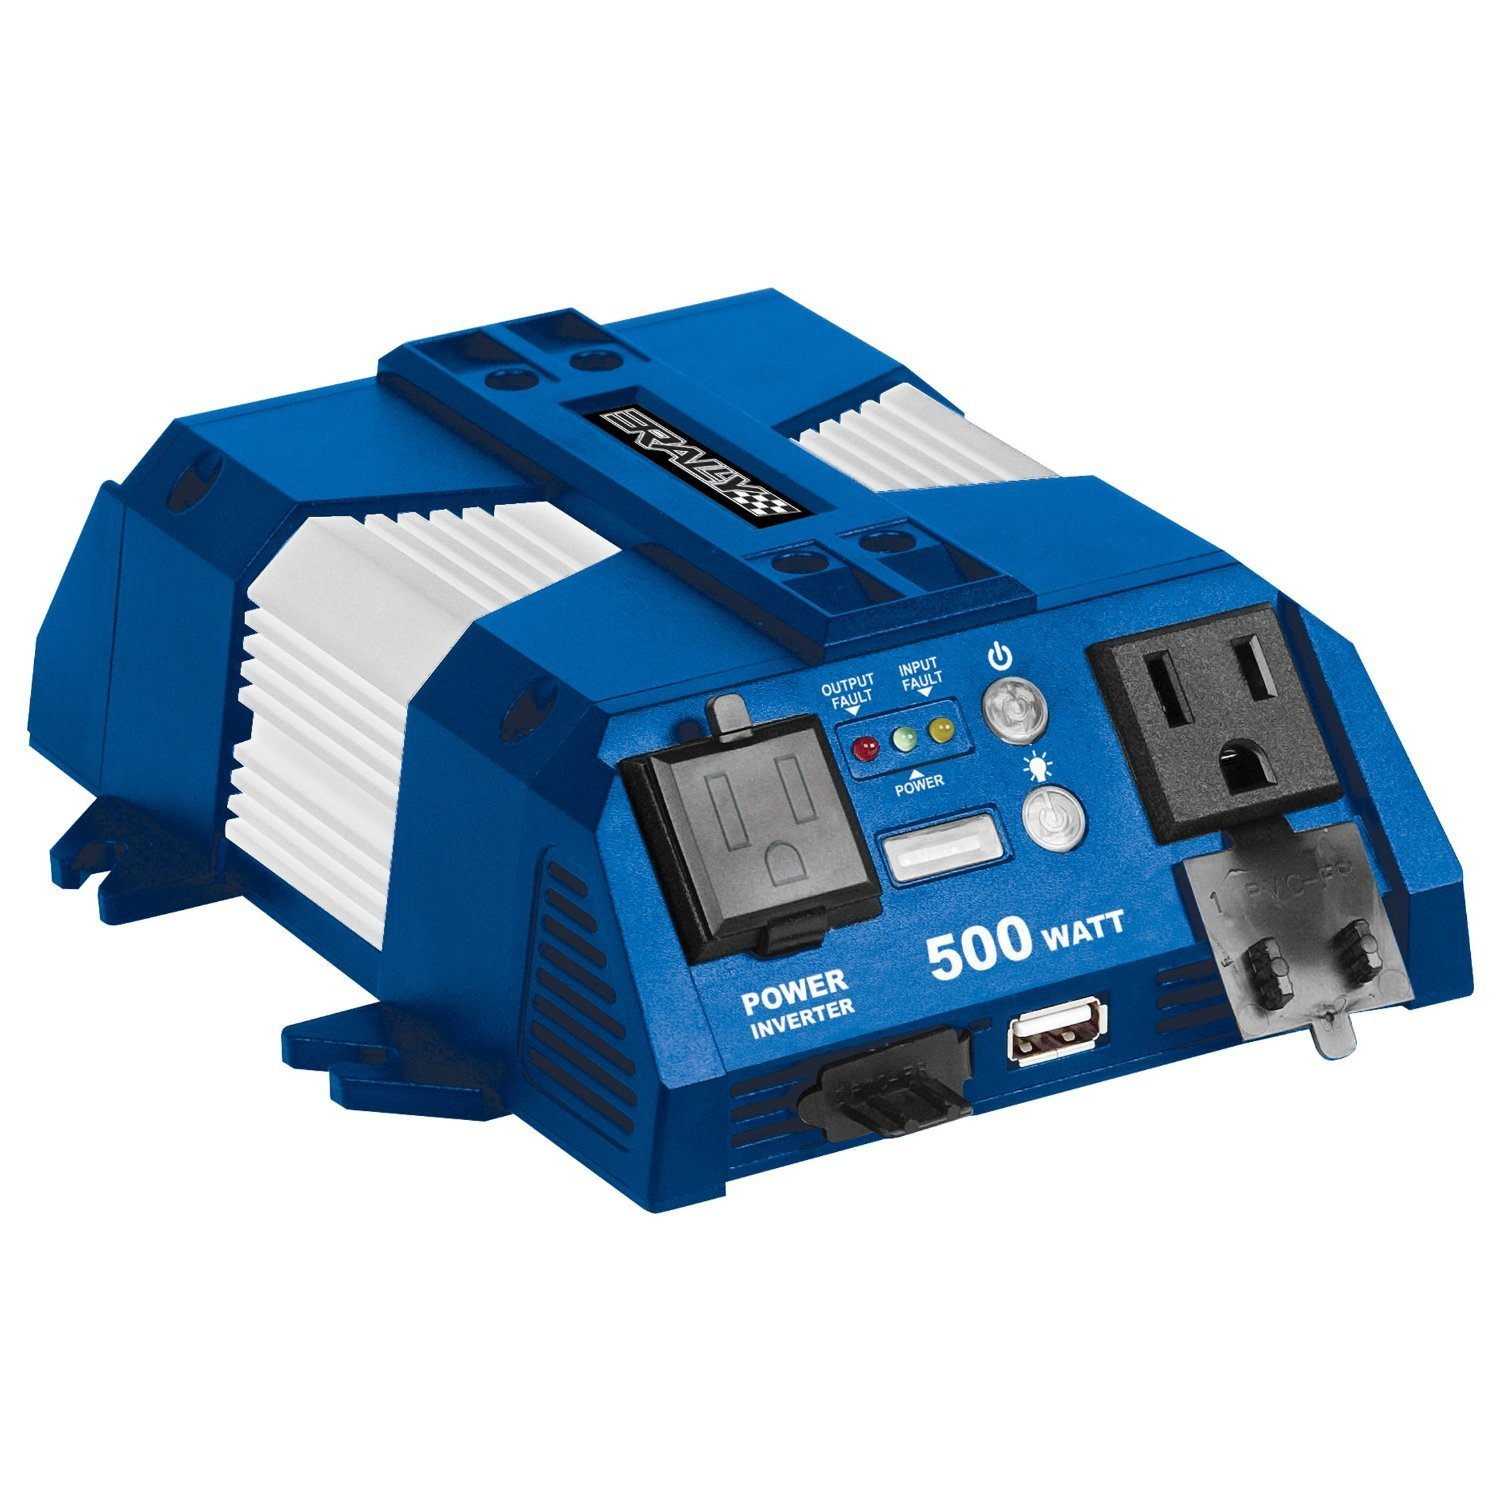 Marine Power Inverter Reviews